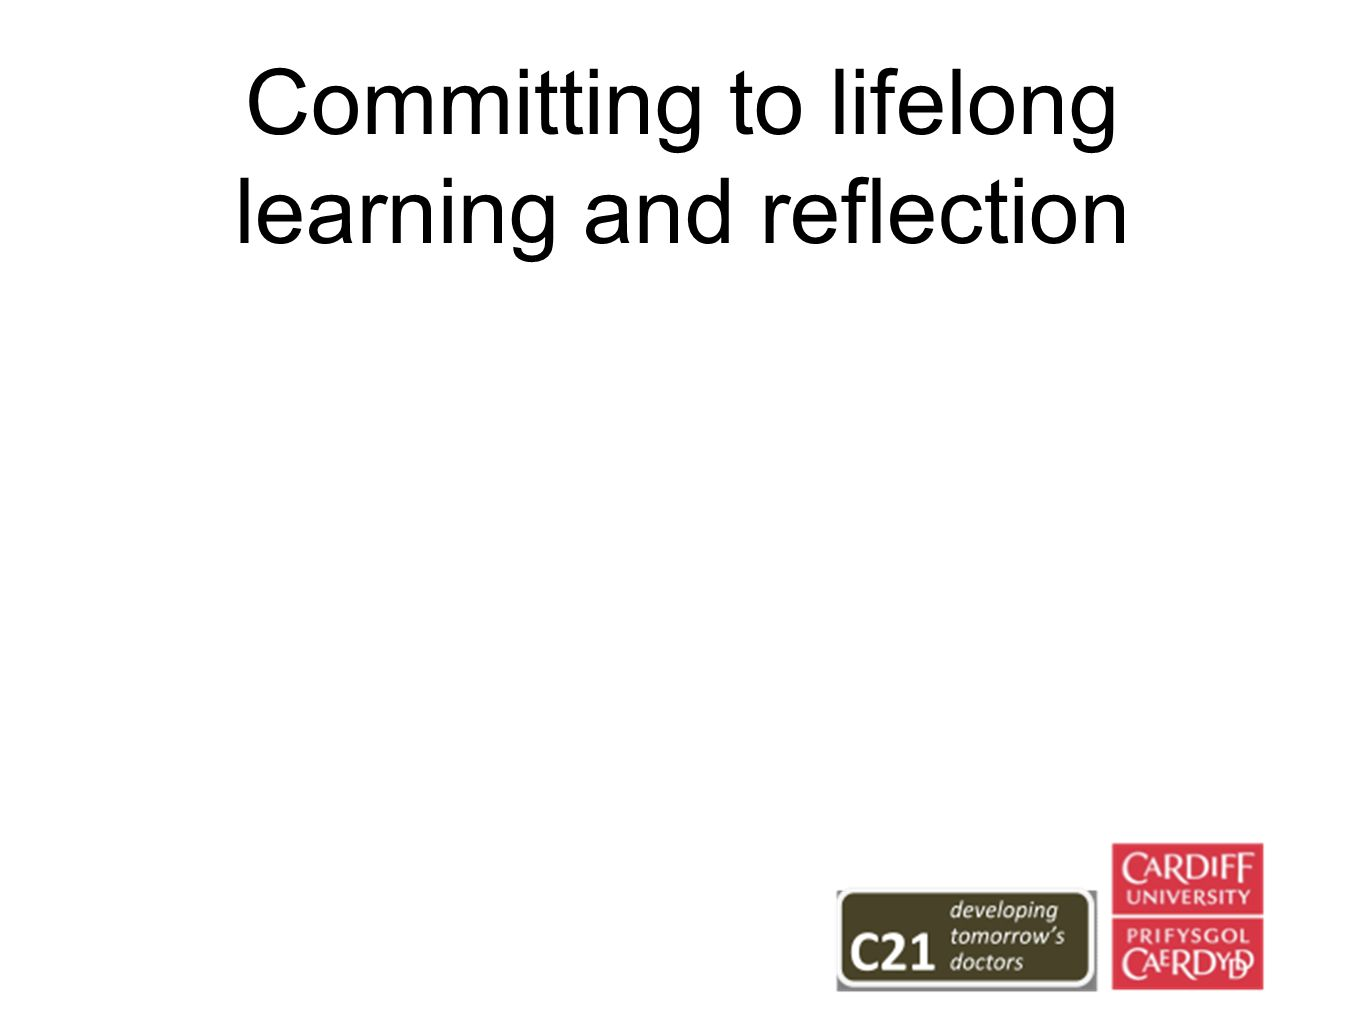 Committing to lifelong learning and reflection